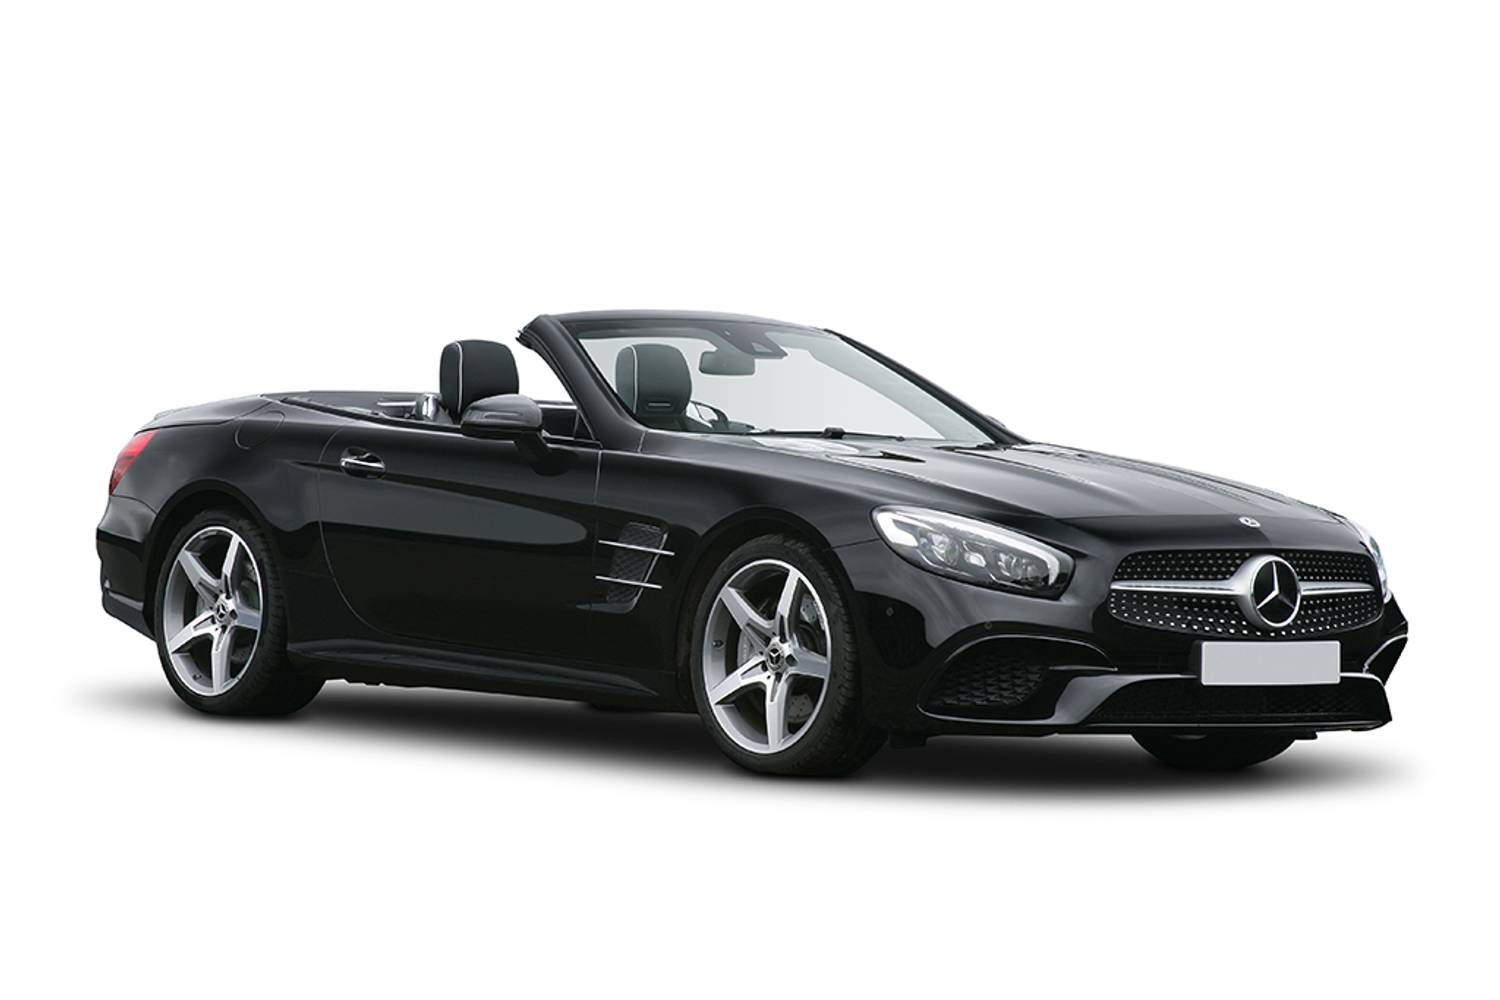 New Mercedes Benz Sl Class Convertible Special Editions Sl 500 Grand Edition Premium 2 Door 9g Tronic 2019 For Sale